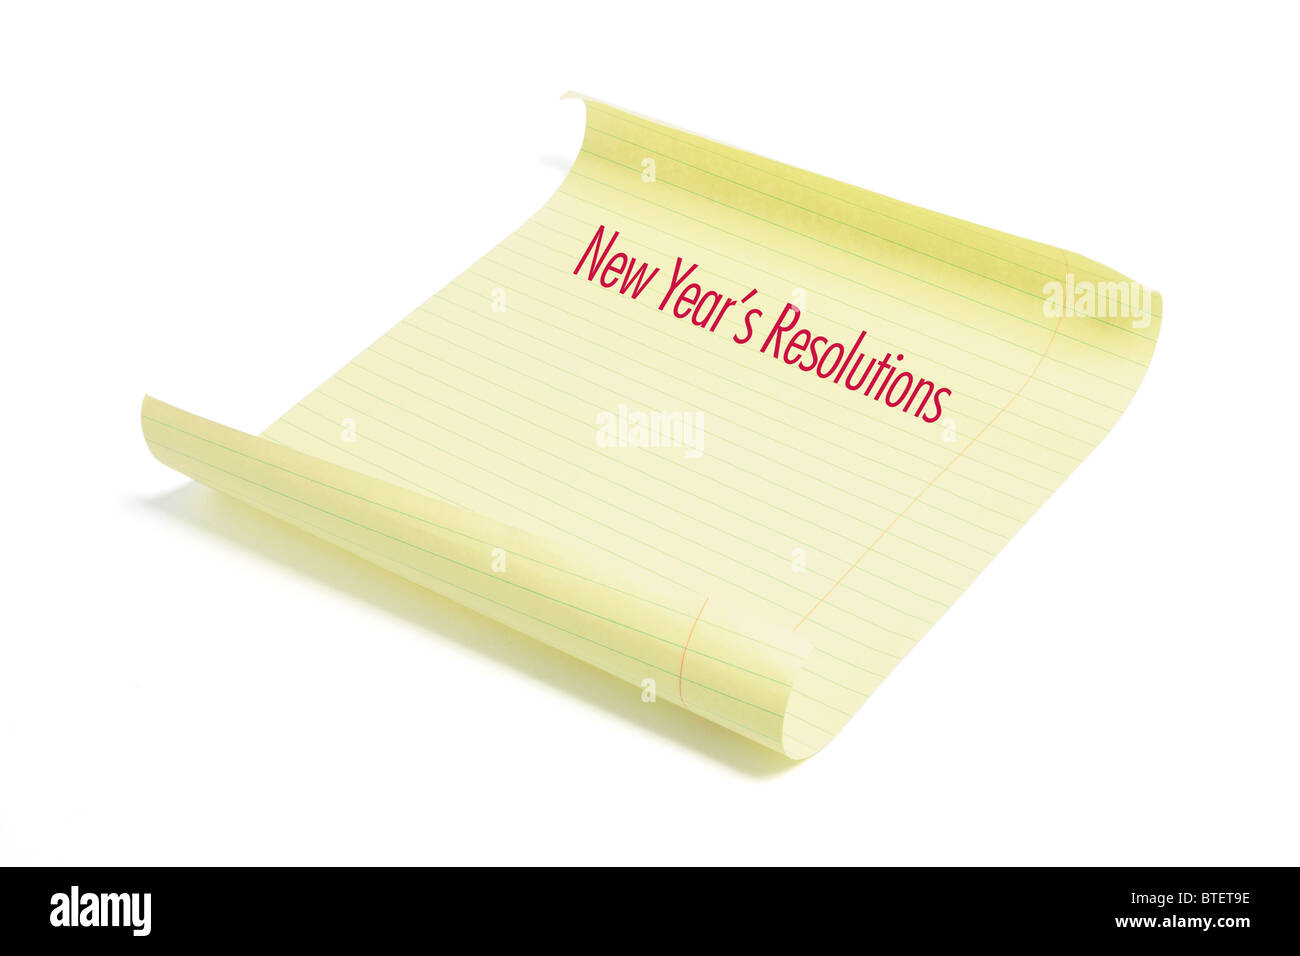 Paper with New Year's Resolutions - Stock Image